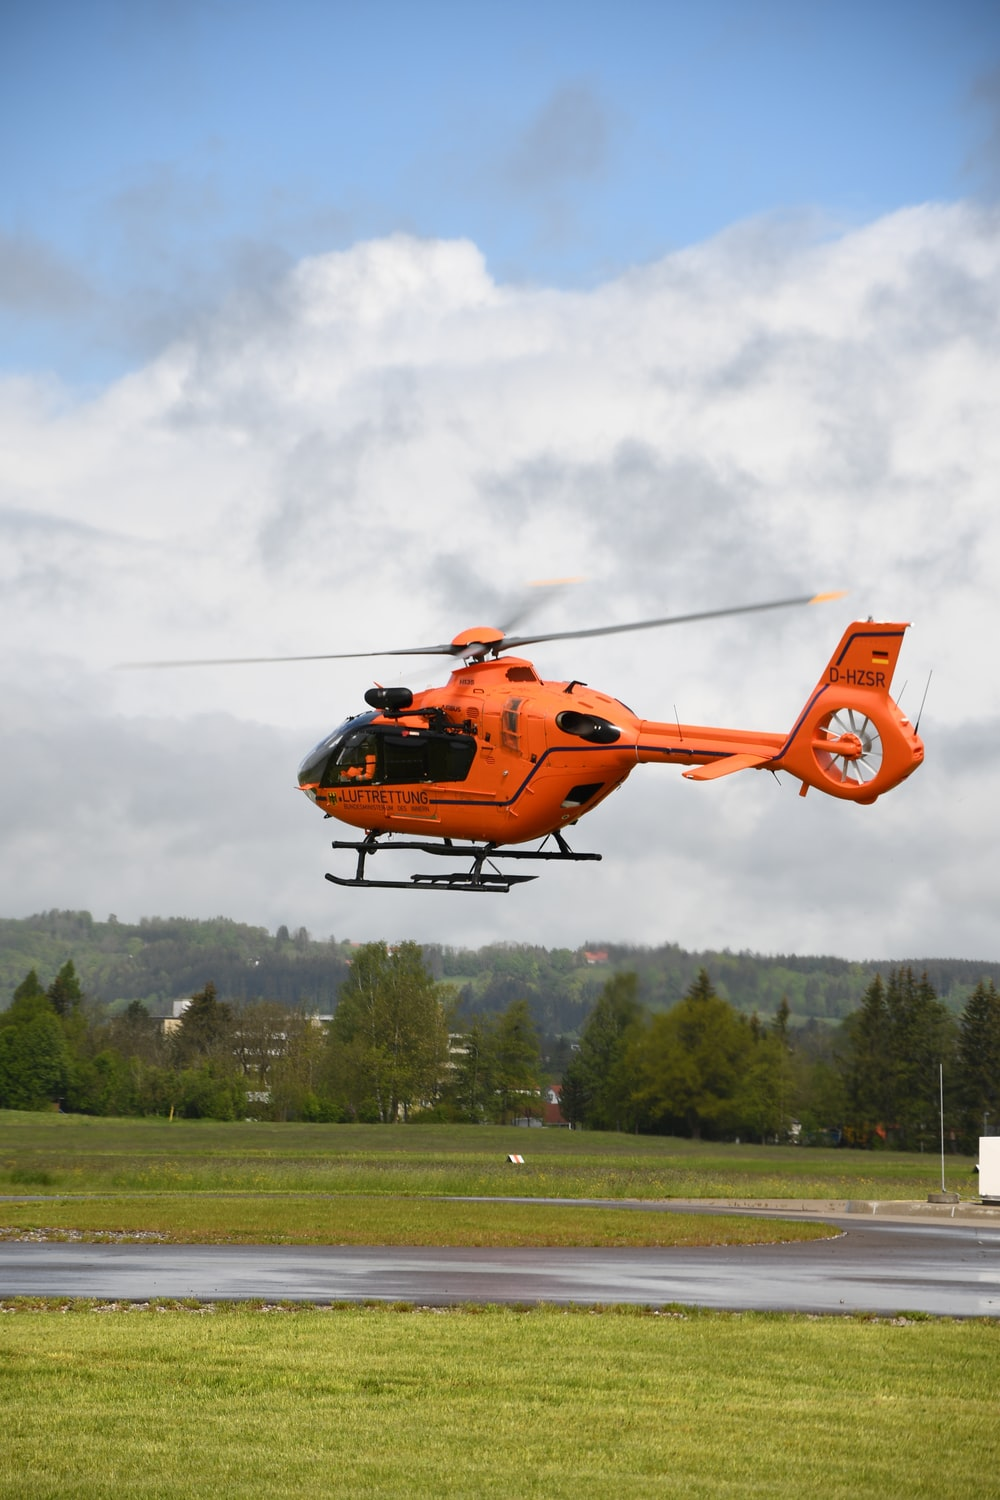 orange helicopter flying over green trees during daytime